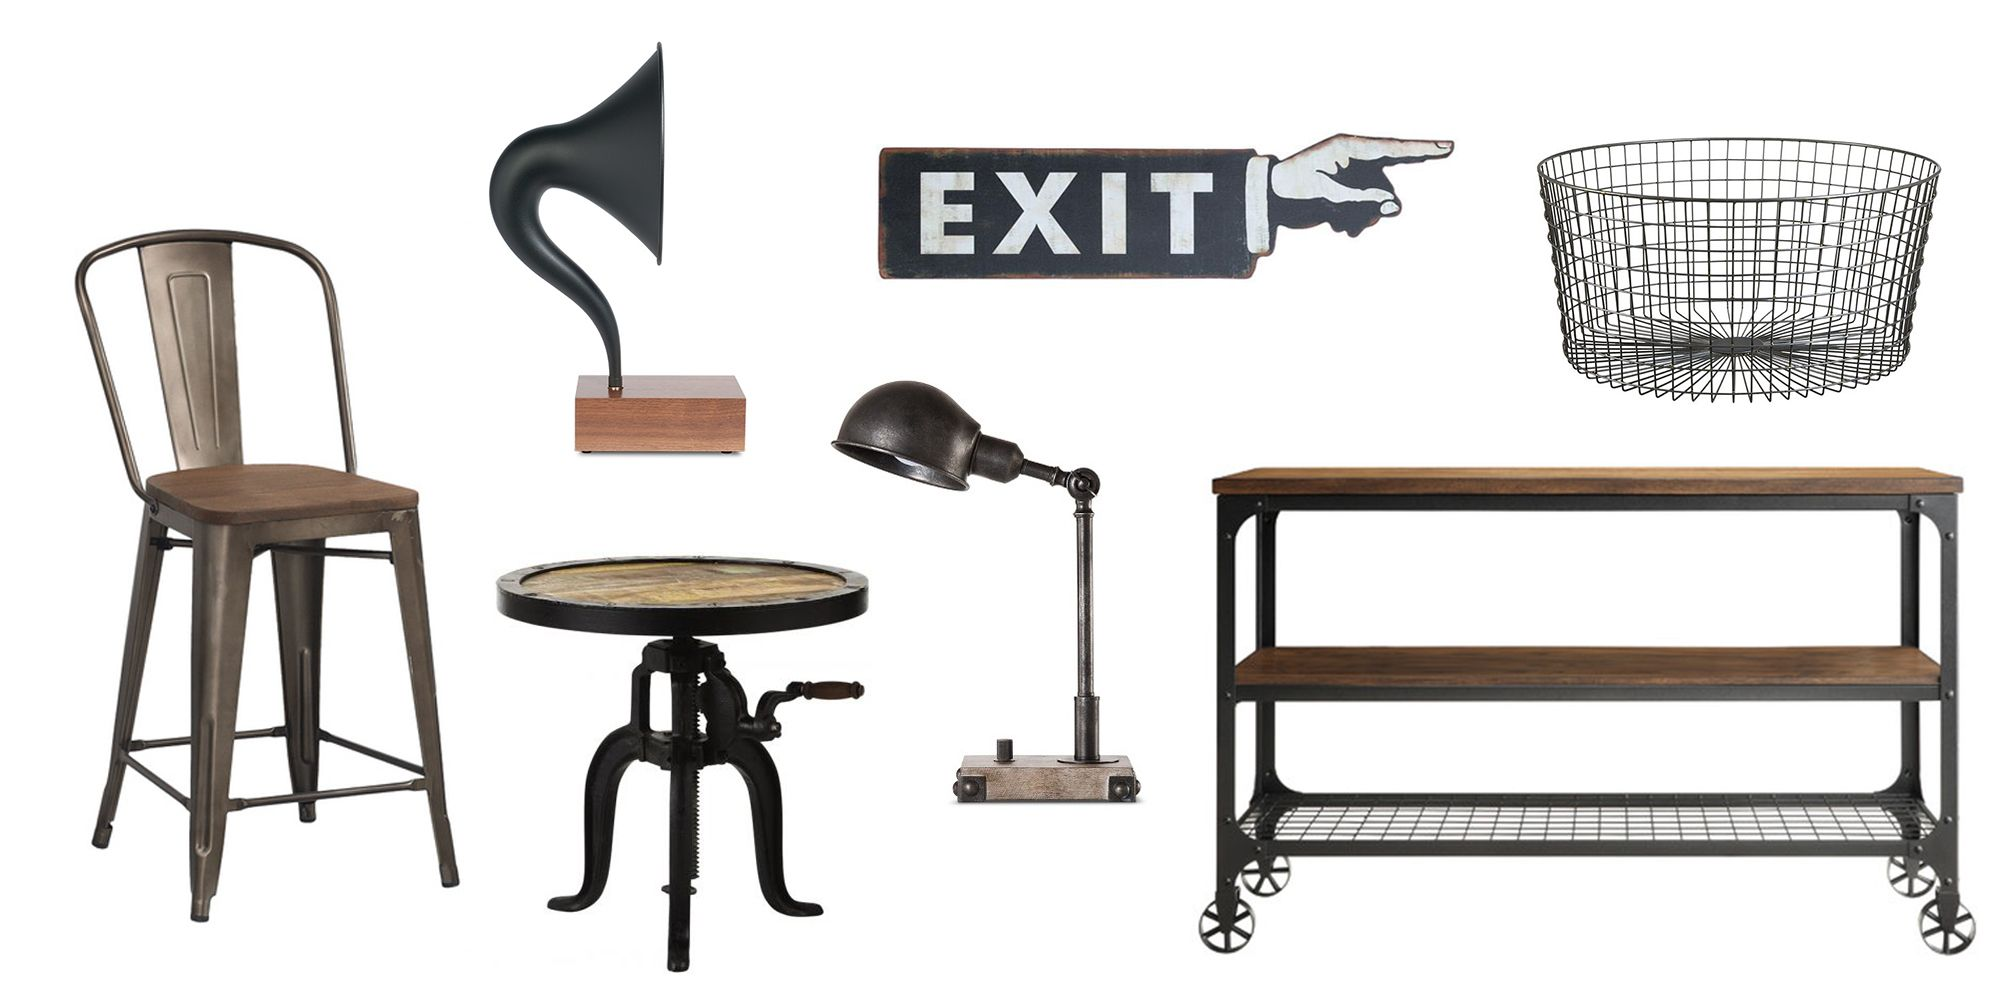 12 Best Industrial Decor and Furniture of 2018 - Ideas for ...